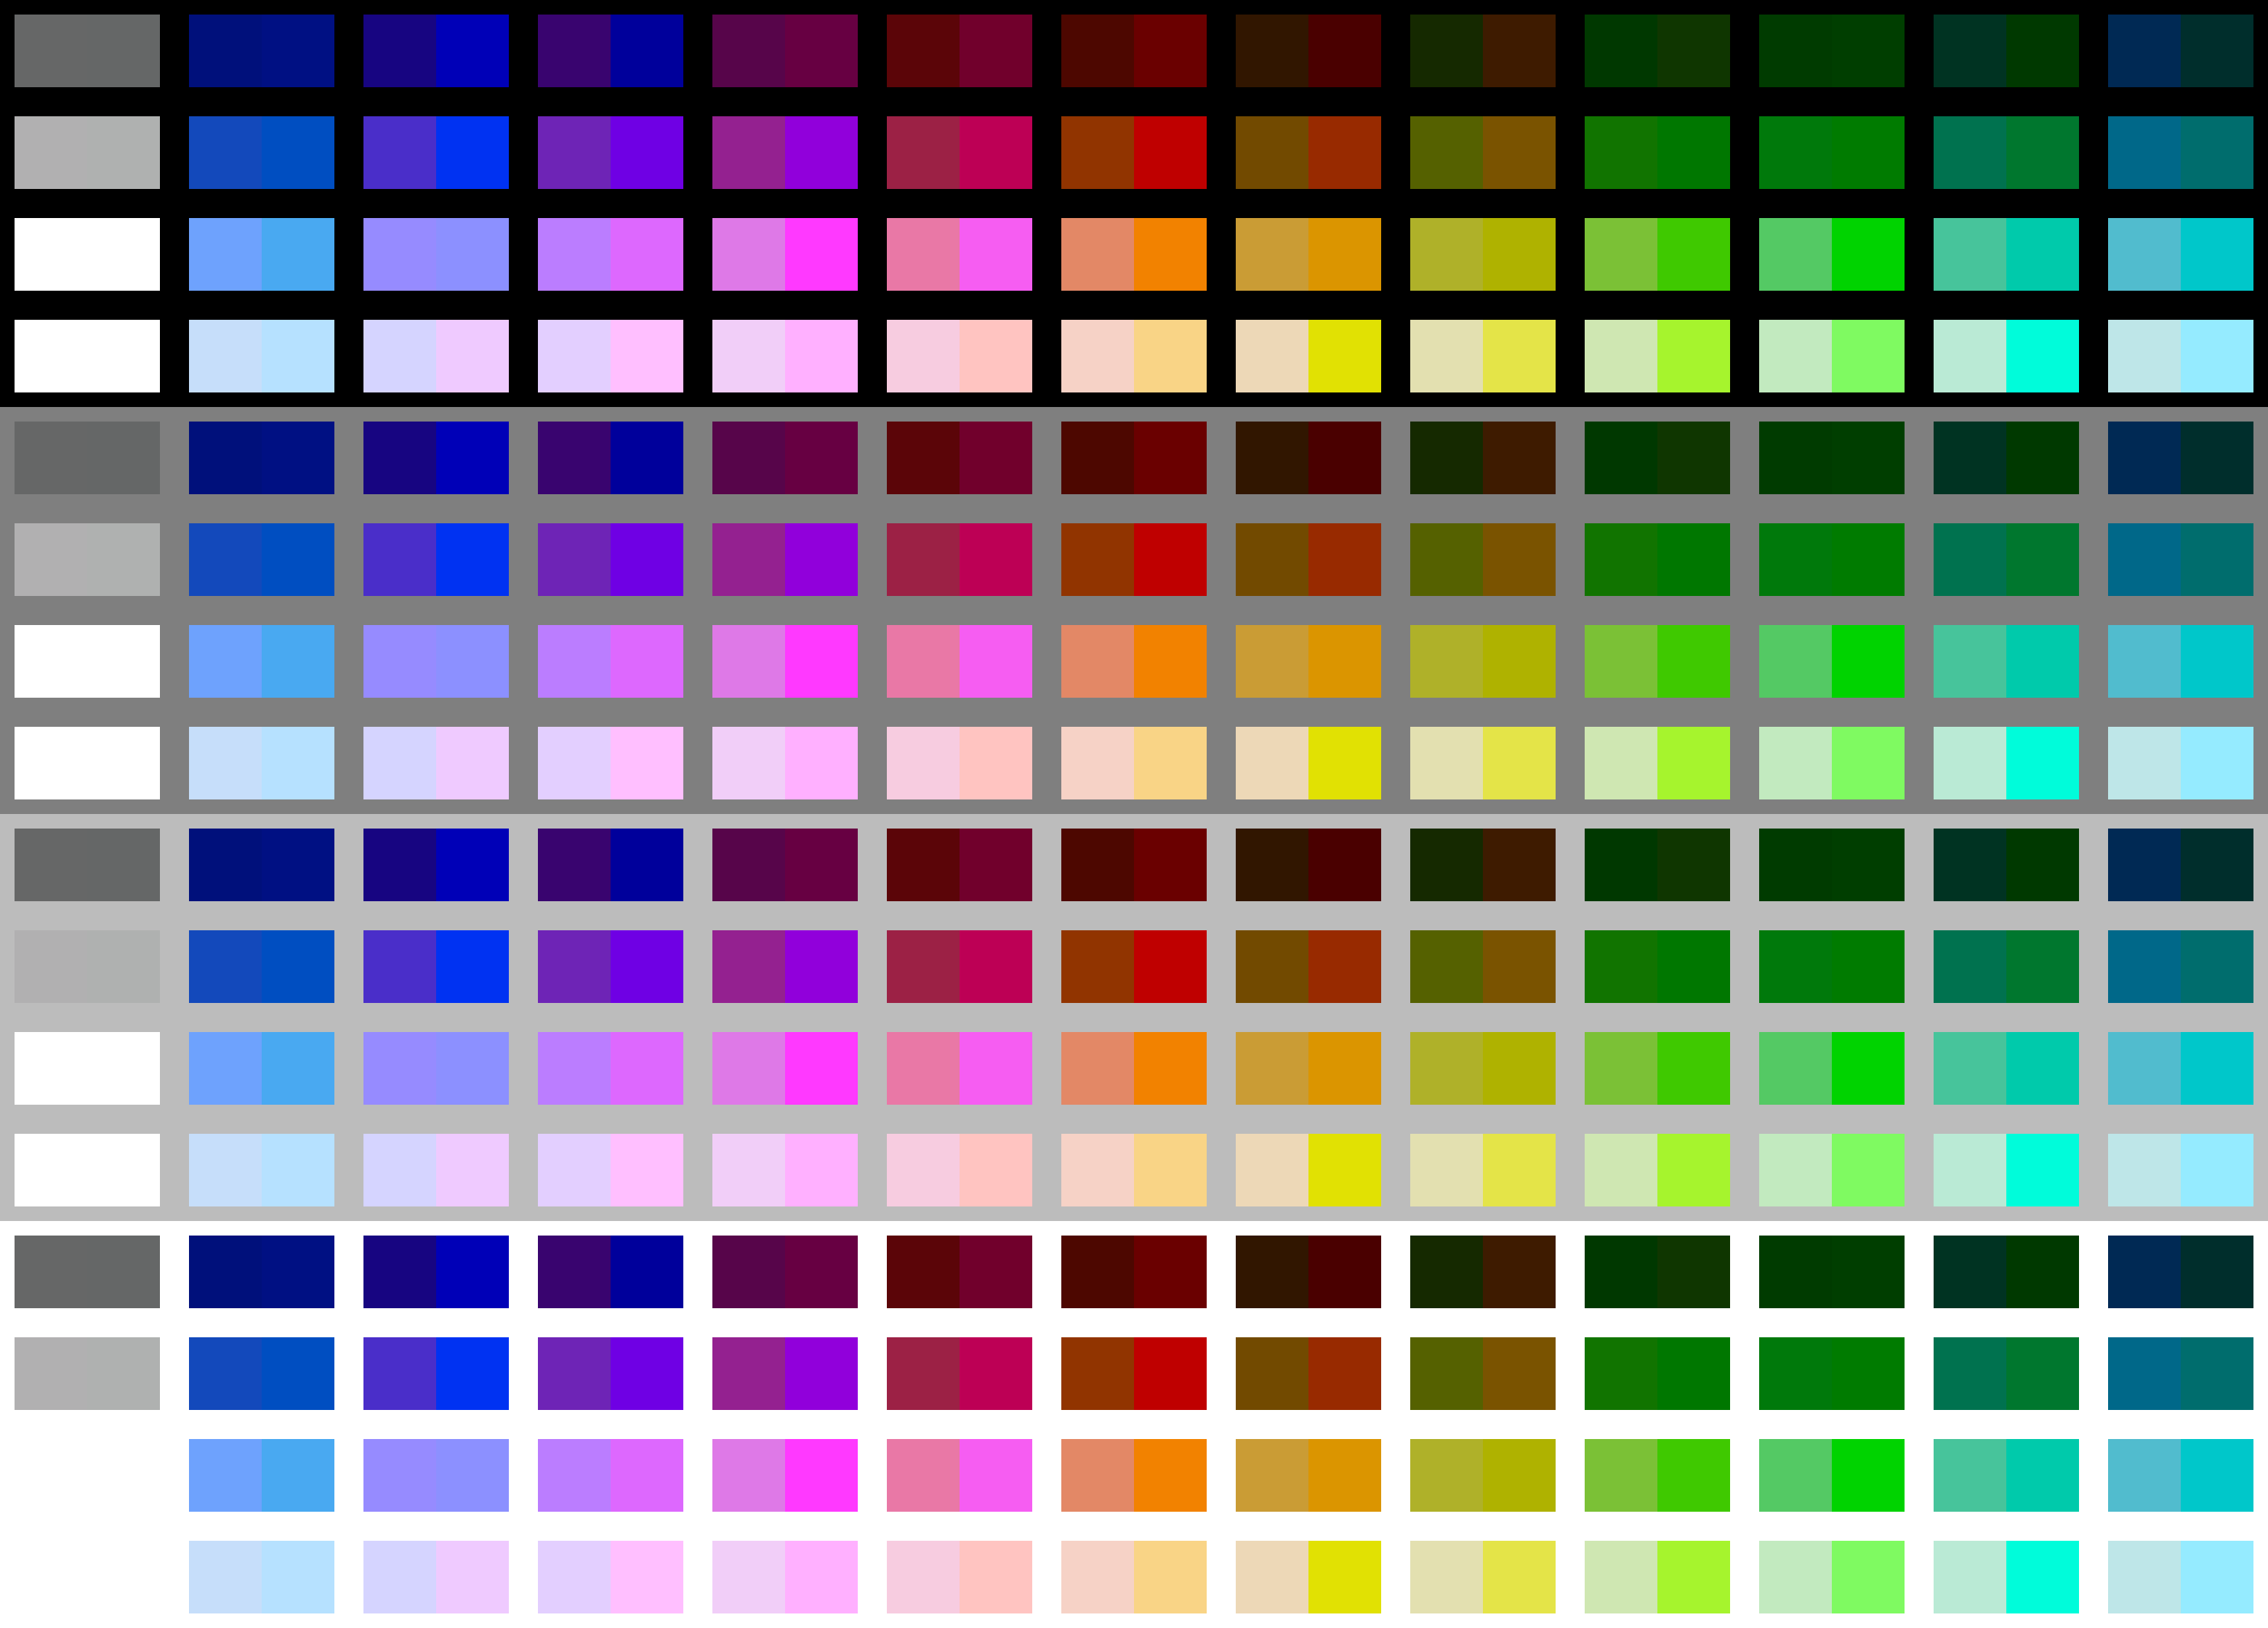 NES palette comparisons